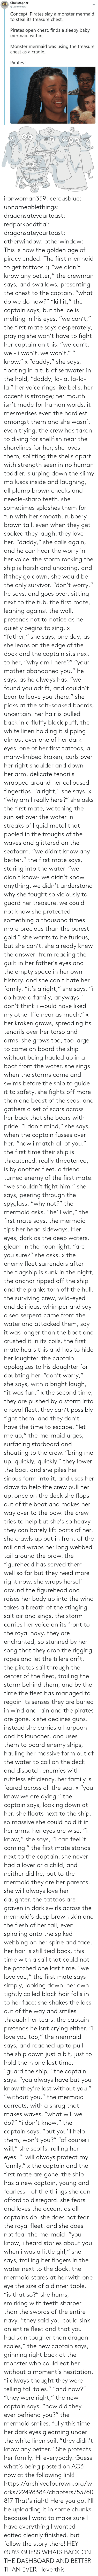 "guide: ironwoman359: cereusblue:  unnameablethings:   dragonsateyourtoast:  redporkpadthai:  dragonsateyourtoast:  otherwindow:  otherwindow: This is how the golden age of piracy ended. The first mermaid to get tattoos :)   ""we didn't know any better,"" the crewman says, and swallows, presenting the chest to the captain. ""what do we do now?"" ""kill it,"" the captain says, but the ice is melting in his eyes. ""we can't,"" the first mate says desperately, praying she won't have to fight her captain on this. ""we can't. we - i won't. we won't."" ""i know."" x ""daddy,"" she says, floating in a tub of seawater in the hold, ""daddy, la-la, la-la-la."" her voice rings like bells. her accent is strange; her mouth isn't made for human words. it mesmerises even the hardiest amongst them and she wasn't even trying. the crew has taken to diving for shellfish near the shorelines for her; she loves them, splitting the shells apart with strength seen in no human toddler, slurping down the slimy molluscs inside and laughing, all plump brown cheeks and needle-sharp teeth. she sometimes splashes them for fun with her smooth, rubbery brown tail. even when they get soaked they laugh. they love her. ""daddy,"" she calls again, and he can hear the worry in her voice. the storm rocking the ship is harsh and uncaring, and if they go down, she would be the only survivor. ""don't worry,"" he says, and goes over, sitting next to the tub. the first mate, leaning against the wall, pretends not to notice as he quietly begins to sing. x ""father,"" she says, one day, as she leans on the edge of the dock and the captain sits next to her, ""why am I here?"" ""your mother abandoned you,"" he says, as he always has. ""we found you adrift, and couldn't bear to leave you there."" she picks at the salt-soaked boards, uncertain. her hair is pulled back in a fluffy black puff, the white linen holding it slipping almost over one of her dark eyes. one of her first tattoos, a many-limbed kraken, curls over her right shoulder and down her arm, delicate tendrils wrapped around her calloused fingertips. ""alright,"" she says. x ""why am I really here?"" she asks the first mate, watching the sun set over the water in streaks of liquid metal that pooled in the troughs of the waves and glittered on the seafoam. ""we didn't know any better,"" the first mate says, staring into the water. ""we didn't know- we didn't know anything. we didn't understand why she fought so viciously to guard her treasure. we could not know she protected something a thousand times more precious than the purest gold."" she wants to be furious, but she can't. she already knew the answer, from reading the guilt in her father's eyes and the empty space in her own history. and she can't hate her family. ""it's alright,"" she says. ""i do have a family, anyways. i don't think i would have liked my other life near as much."" x her kraken grows, spreading its tendrils over her torso and arms. she grows too, too large to come on board the ship without being hauled up in a boat from the water. she sings when the storms come and swims before the ship to guide it to safety. she fights off more than one beast of the seas, and gathers a set of scars across her back that she bears with pride. ""i don't mind,"" she says, when the captain fusses over her, ""now i match all of you."" the first time their ship is threatened, really threatened, is by another fleet. a friend turned enemy of the first mate. ""we shouldn't fight him,"" she says, peering through the spyglass. ""why not?"" the mermaid asks. ""he'll win,"" the first mate says. the mermaid tips her head sideways. Her eyes, dark as the deep waters, gleam in the noon light. ""are you sure?"" she asks. x the enemy fleet surrenders after the flagship is sunk in the night, the anchor ripped off the ship and the planks torn off the hull. the surviving crew, wild-eyed and delirious, whimper and say a sea serpent came from the water and attacked them, say it was longer than the boat and crushed it in its coils. the first mate hears this and has to hide her laughter. the captain apologizes to his daughter for doubting her. ""don't worry,"" she says, with a bright laugh, ""it was fun."" x the second time, they are pushed by a storm into a royal fleet. they can't possibly fight them, and they don't have the time to escape. ""let me up,"" the mermaid urges, surfacing starboard and shouting to the crew. ""bring me up, quickly, quickly."" they lower the boat and she piles her sinous form into it, and uses her claws to help the crew pull her up. once on the deck she flops out of the boat and makes her way over to the bow. the crew tries to help but she's so heavy they can barely lift parts of her. she crawls up out in front of the rail and wraps her long webbed tail around the prow. the figurehead has served them well so far but they need more right now. she wraps herself around the figurehead and raises her body up into the wind takes a breath of the stinging salt air and sings. the storm carries her voice on its front to the royal navy. they are enchanted, so stunned by her song that they drop the rigging ropes and let the tillers drift. the pirates sail through the center of the fleet, trailing the storm behind them, and by the time the fleet has managed to regain its senses they are buried in wind and rain and the pirates are gone. x she declines guns. instead she carries a harpoon and its launcher, and uses them to board enemy ships, hauling her massive form out of the water to coil on the deck and dispatch enemies with ruthless efficiency. her family is feared across all the sea. x ""you know we are dying,"" the captain says, looking down at her. she floats next to the ship, so massive she could hold it in her arms. her eyes are wise. ""i know,"" she says, ""i can feel it coming."" the first mate stands next to the captain. she never had a lover or a child, and neither did he, but to the mermaid they are her parents. she will always love her daughter. the tattoos are graven in dark swirls across the mermaid's deep brown skin and the flesh of her tail, even spiraling onto the spiked webbing on her spine and face. her hair is still tied back, this time with a sail that could not be patched one last time.  ""we love you,"" the first mate says simply, looking down. her own tightly coiled black hair falls in to her face; she shakes the locs out of the way and smiles through her tears. the captain pretends he isnt crying either. ""i love you too,"" the mermaid says, and reached up to pull the ship down just a bit, just to hold them one last time. ""guard the ship,"" the captain says. ""you always have but you know they're lost without you."" ""without you,"" the mermaid corrects, with a shrug that makes waves. ""what will we do?"" ""i don't know,"" the captain says. ""but you'll help them, won't you?"" ""of course i will,"" she scoffs, rolling her eyes. ""i will always protect my family."" x the captain and the first mate are gone. the ship has a new captain, young and fearless - of the things she can afford to disregard. she fears and loves the ocean, as all captains do. she does not fear the royal fleet. and she does not fear the mermaid. ""you know, i heard stories about you when i was a little girl,"" she says, trailing her fingers in the water next to the dock. the mermaid stares at her with one eye the size of a dinner table. ""is that so?"" she hums, smirking with teeth sharper than the swords of the entire navy. ""they said you could sink an entire fleet and that you had skin tougher than dragon scales,"" the new captain says, grinning right back at the monster who could eat her without a moment's hesitation. ""i always thought they were telling tall tales."" ""and now?"" ""they were right,"" the new captain says. ""how did they ever befriend you?"" the mermaid smiles, fully this time, her dark eyes gleaming under the white linen sail. ""they didn't know any better.""  She protects her family.  Hi everybody! Guess what's being posted on AO3 now at the following link! https://archiveofourown.org/works/22498384/chapters/53760817 That's right! Here you go. I'll be uploading it in some chunks, because I want to make sure I have everything I wanted edited cleanly finished, but follow the story there!     HEY GUYS GUESS WHATS BACK ON THE DASHBOARD AND BETTER THAN EVER    I love this"